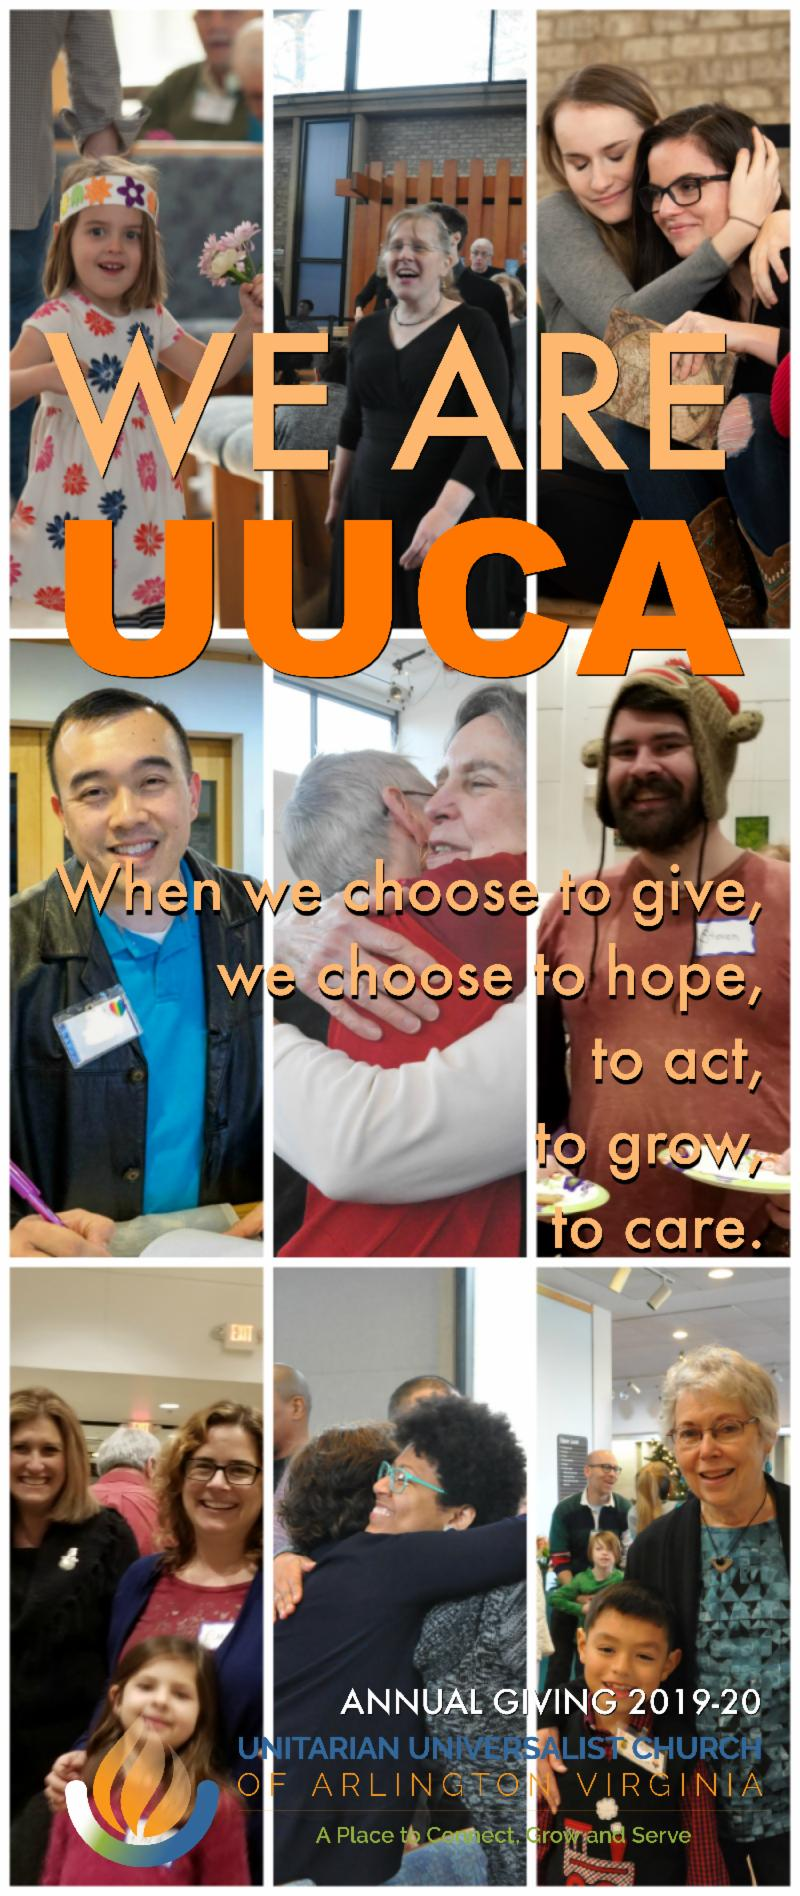 WE ARE UUCA - annual giving poster